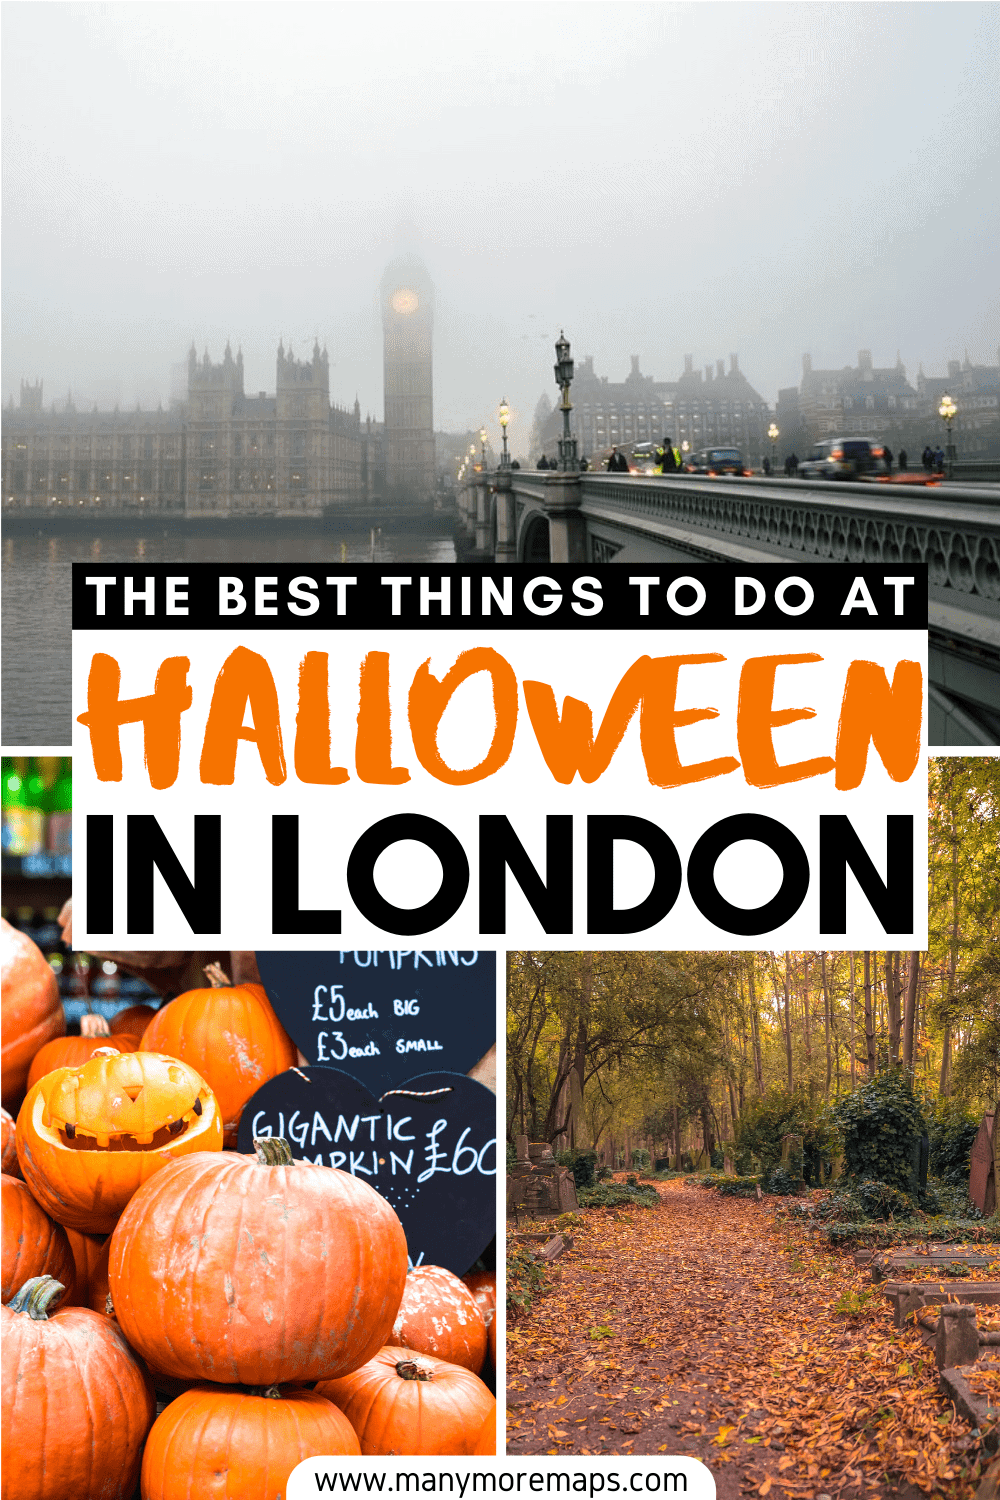 Planning to visit London in autumn or fall and want to know the very best spooky things to do and haunted locations to visit in London for Halloween? From taking a Jack the Ripper tour to visiting the London Dungeons and having a pint in one of London's haunted pubs, here is the perfect Halloween and autumn bucket list for London! Halloween in London, Halloween activities in London